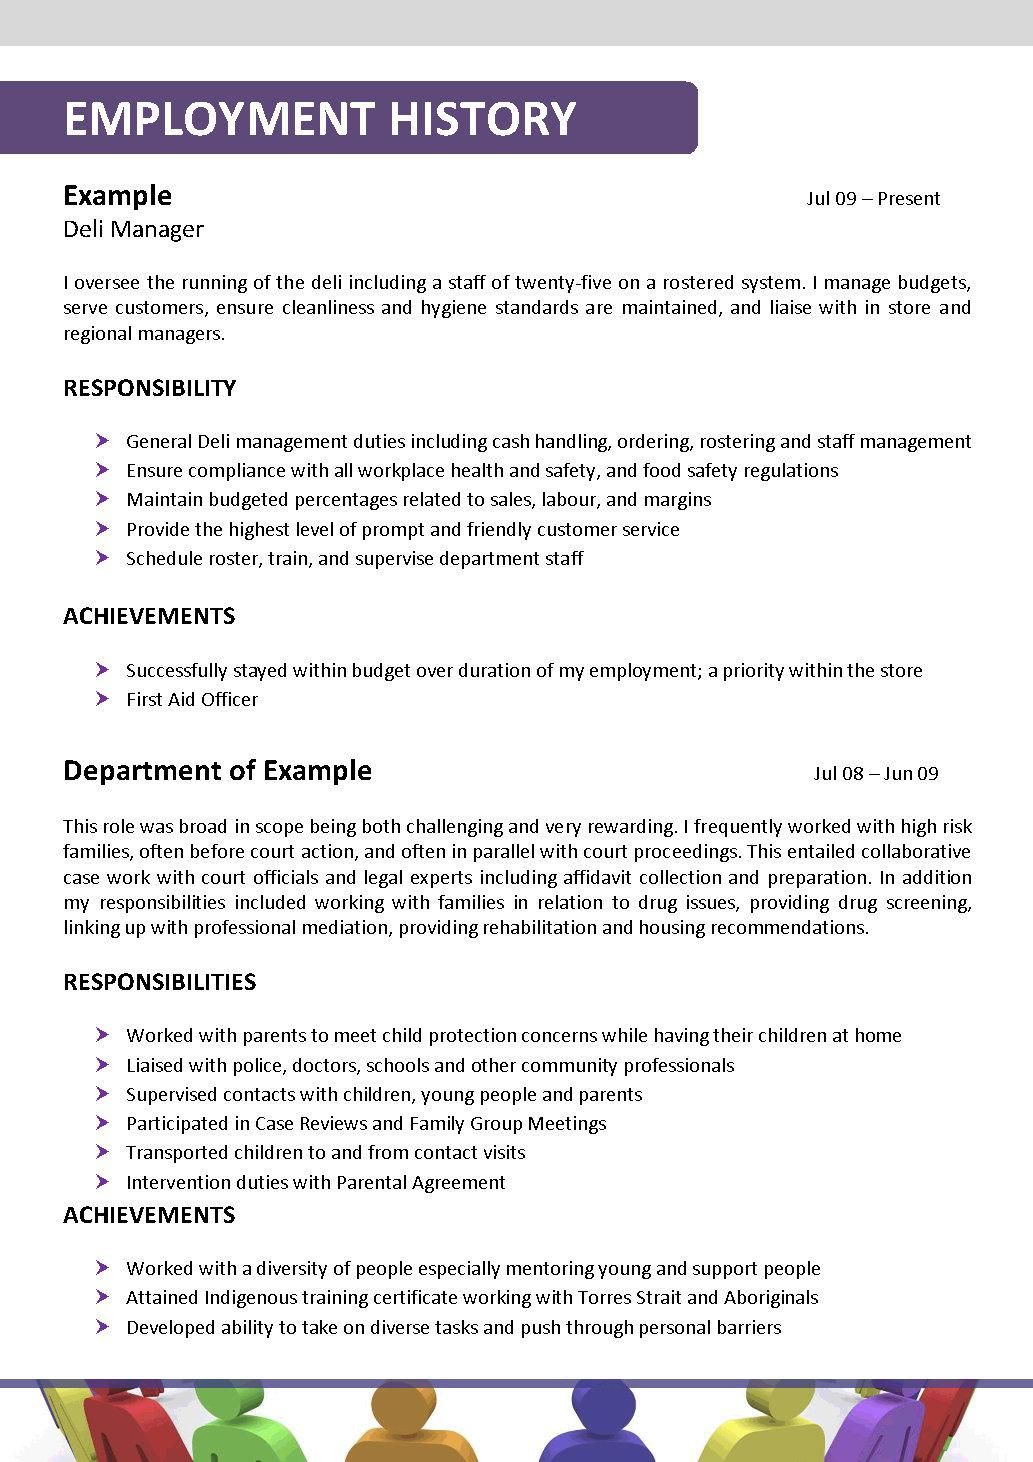 social work resume format are really great examples of resume and curriculum vitae for those who are looking for job - Social Worker Resume Templates